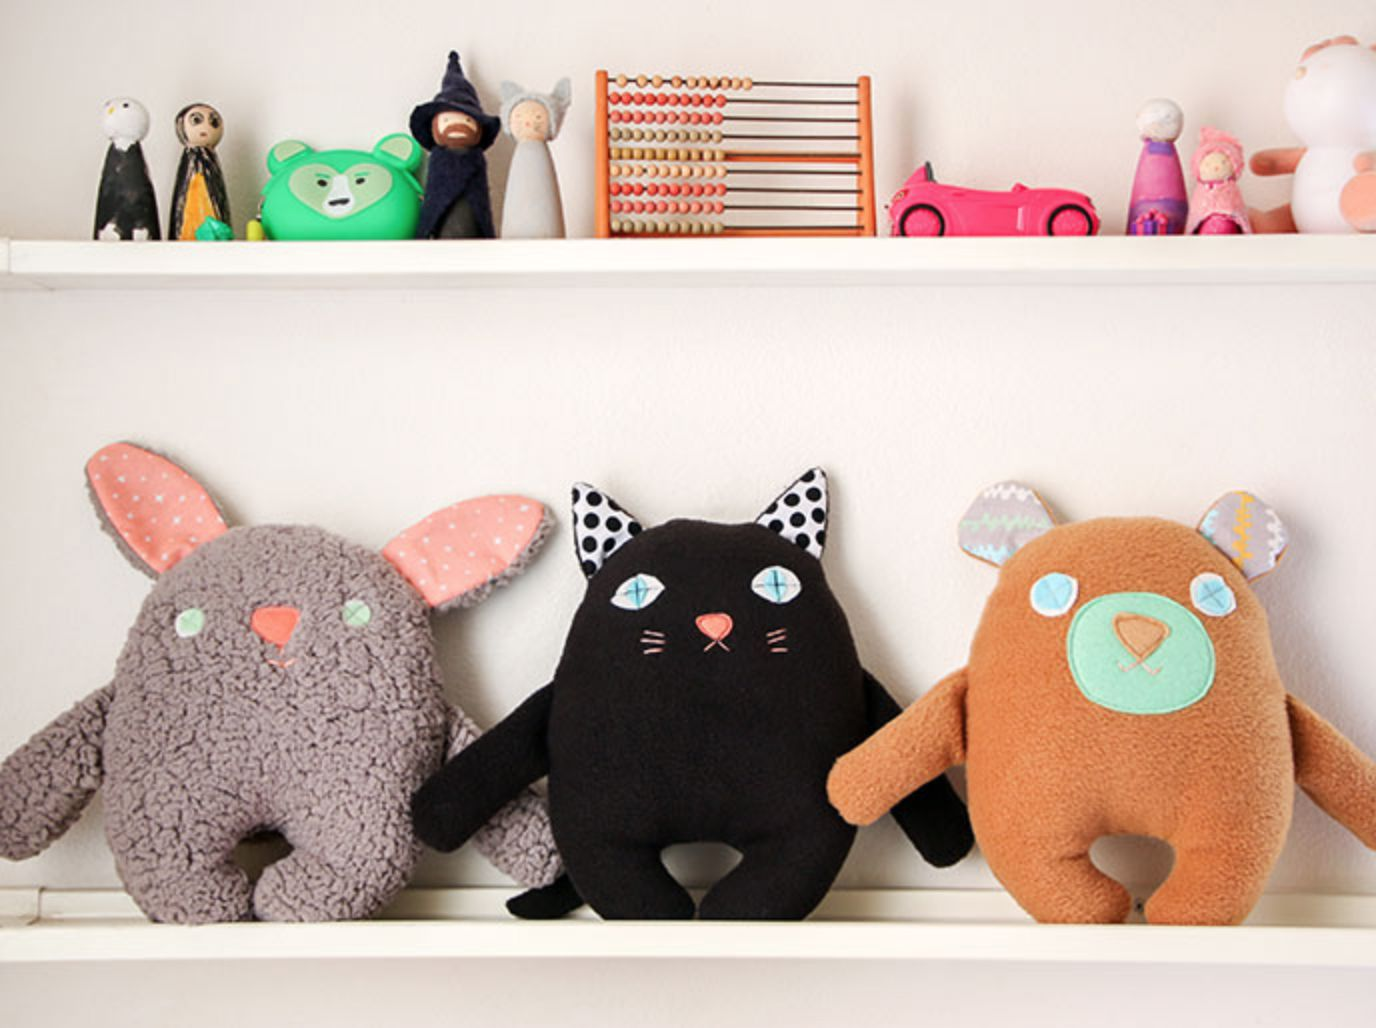 Craft A Stuffed Bear And Friends For Giving